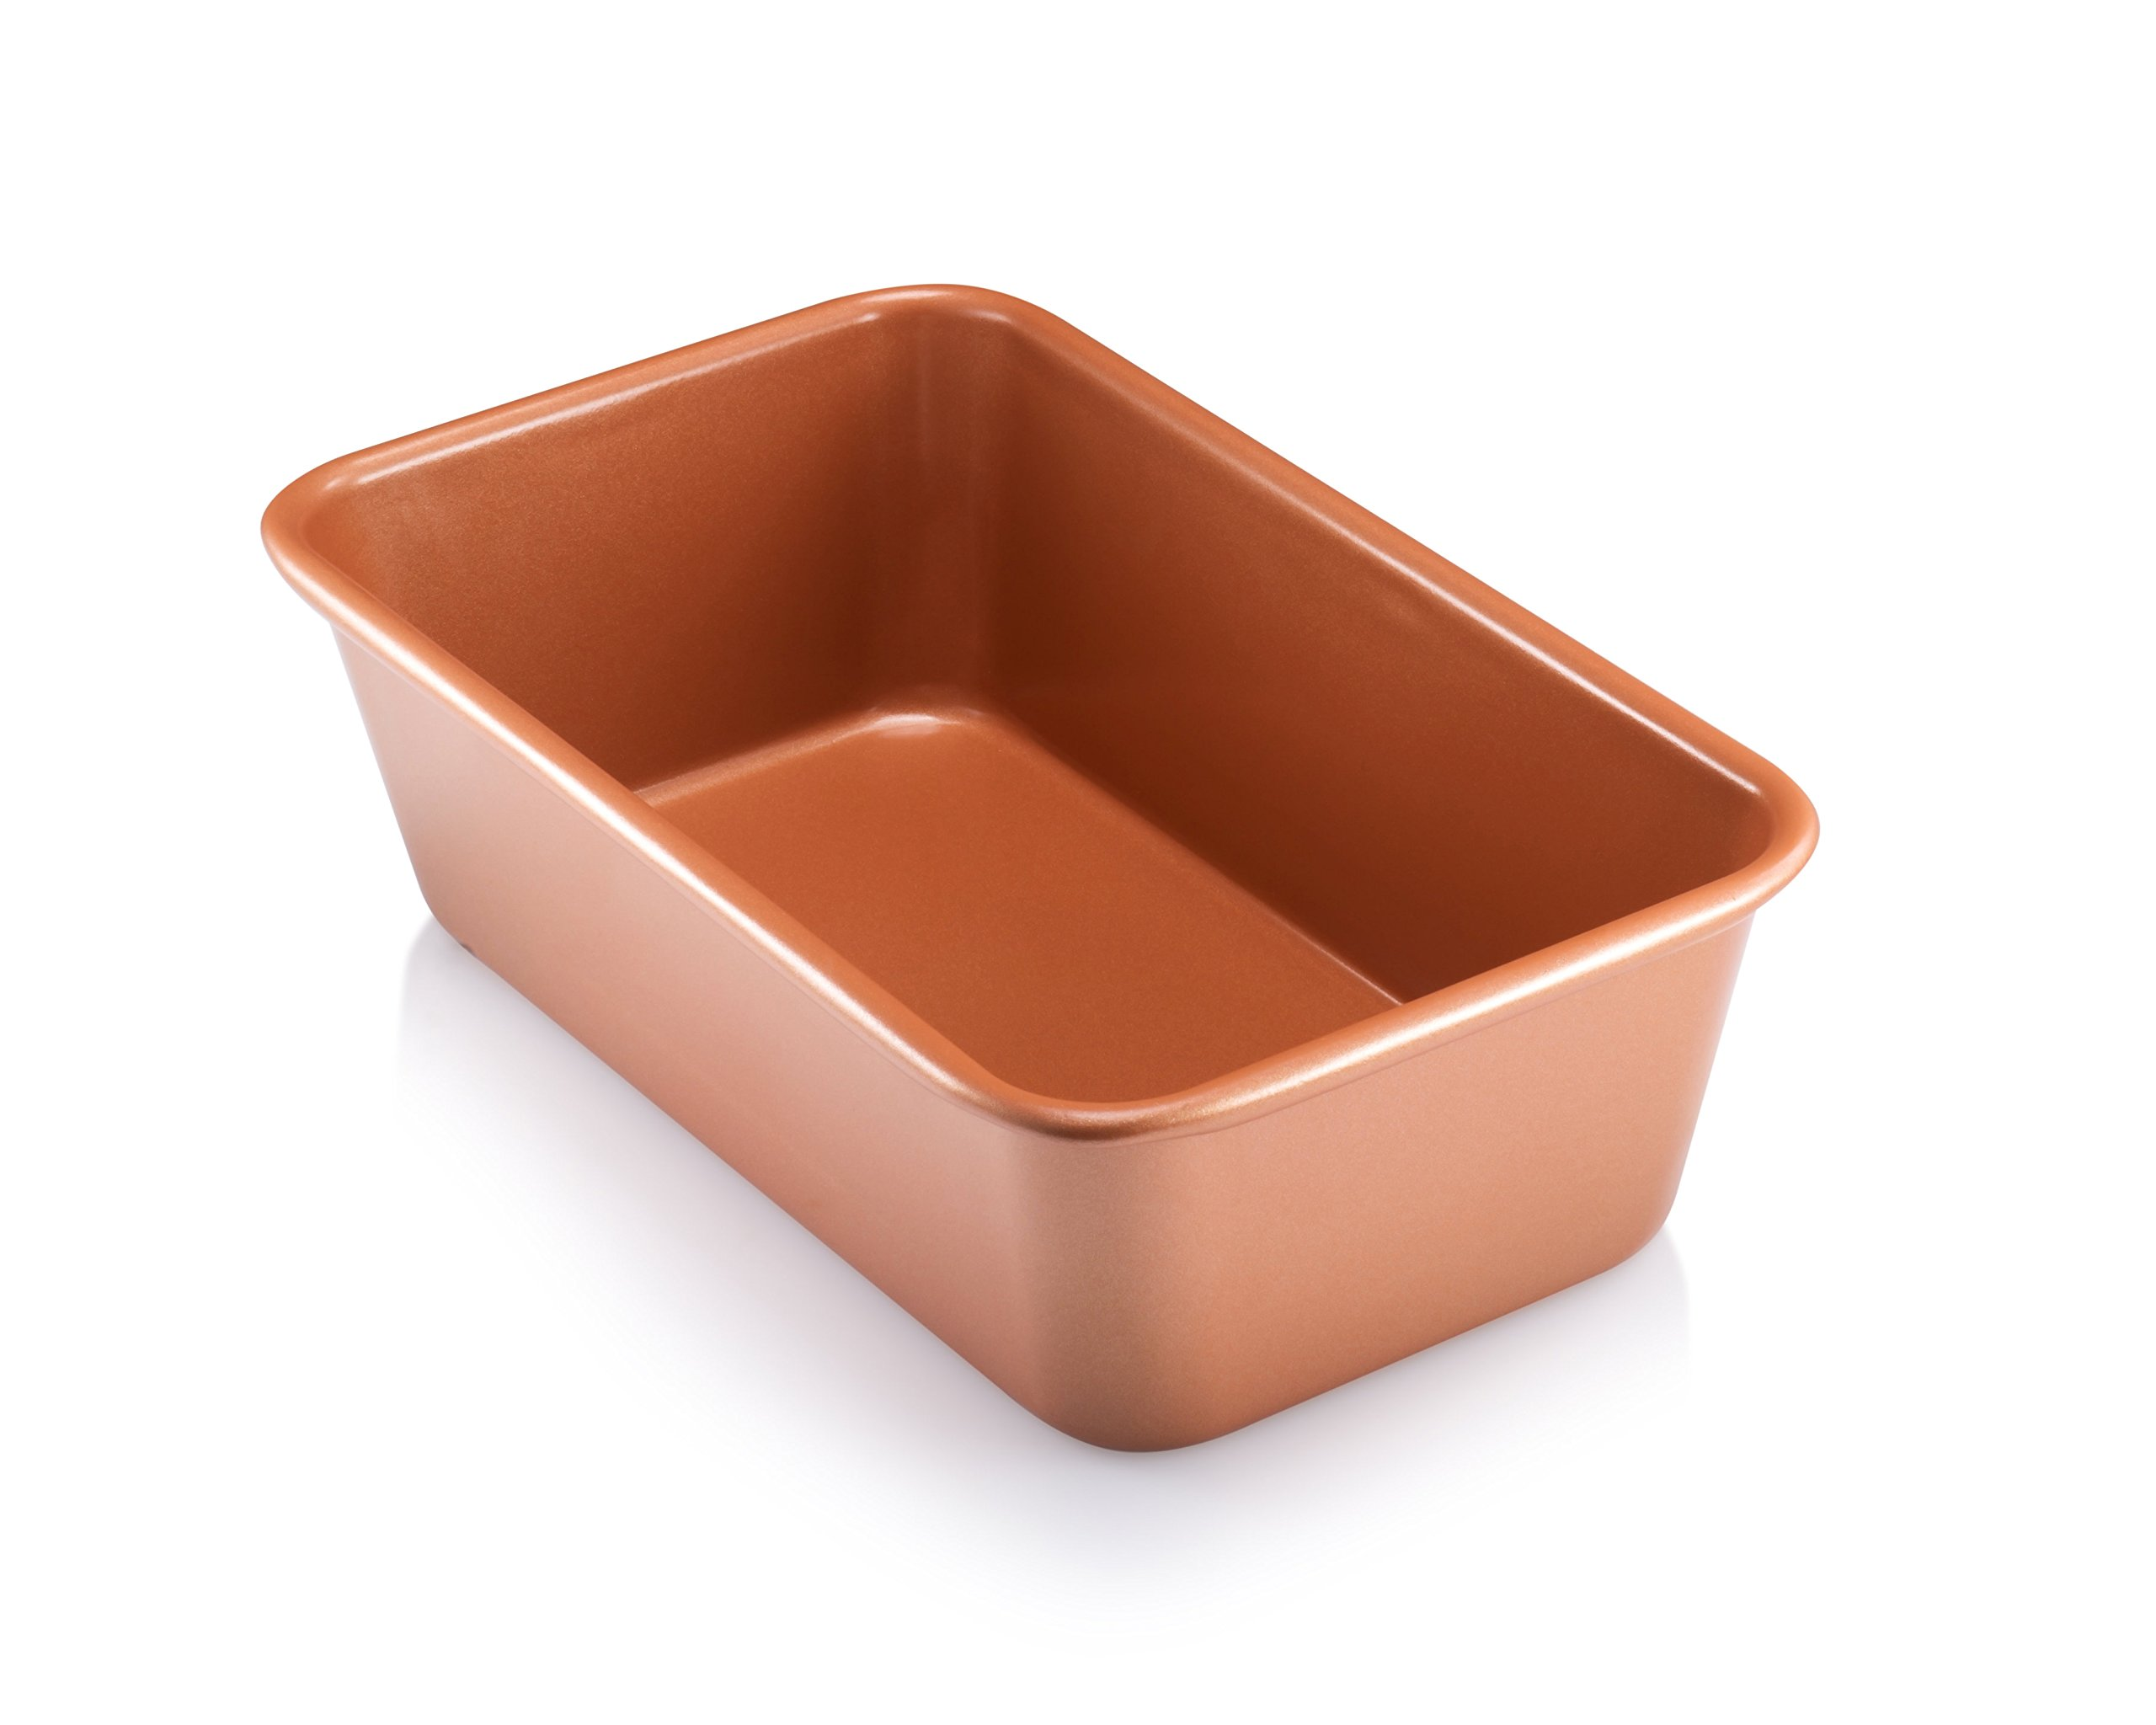 Gotham Steel Bakeware - Loaf Pan, 9 x 4 inch, with Nonstick Copper & Quick Release Coating